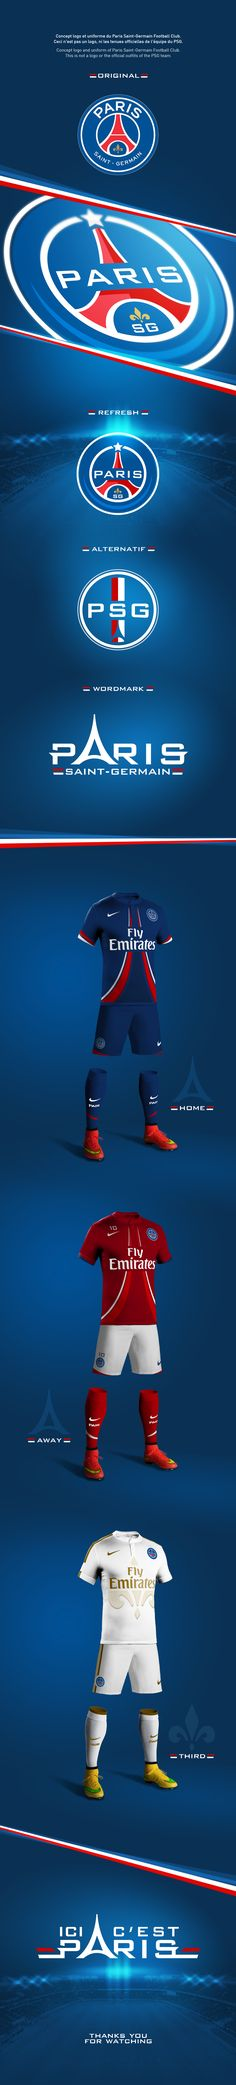 Concept rebrand PSG football club on Behance